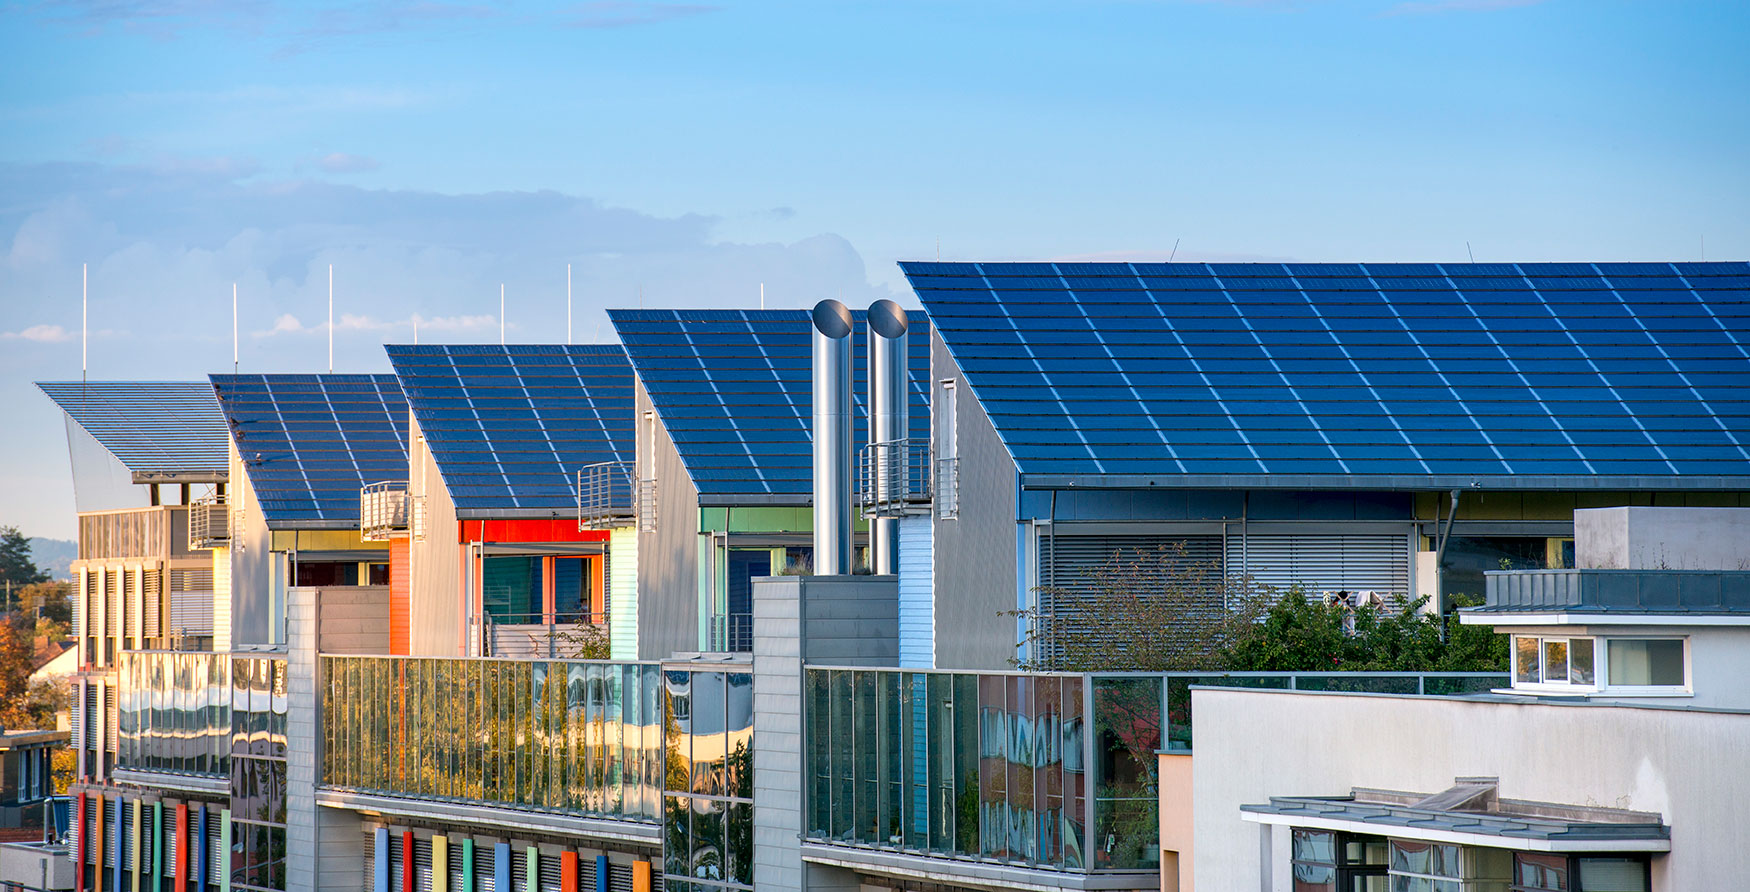 What is the basic difference between residential and commercial solar system?